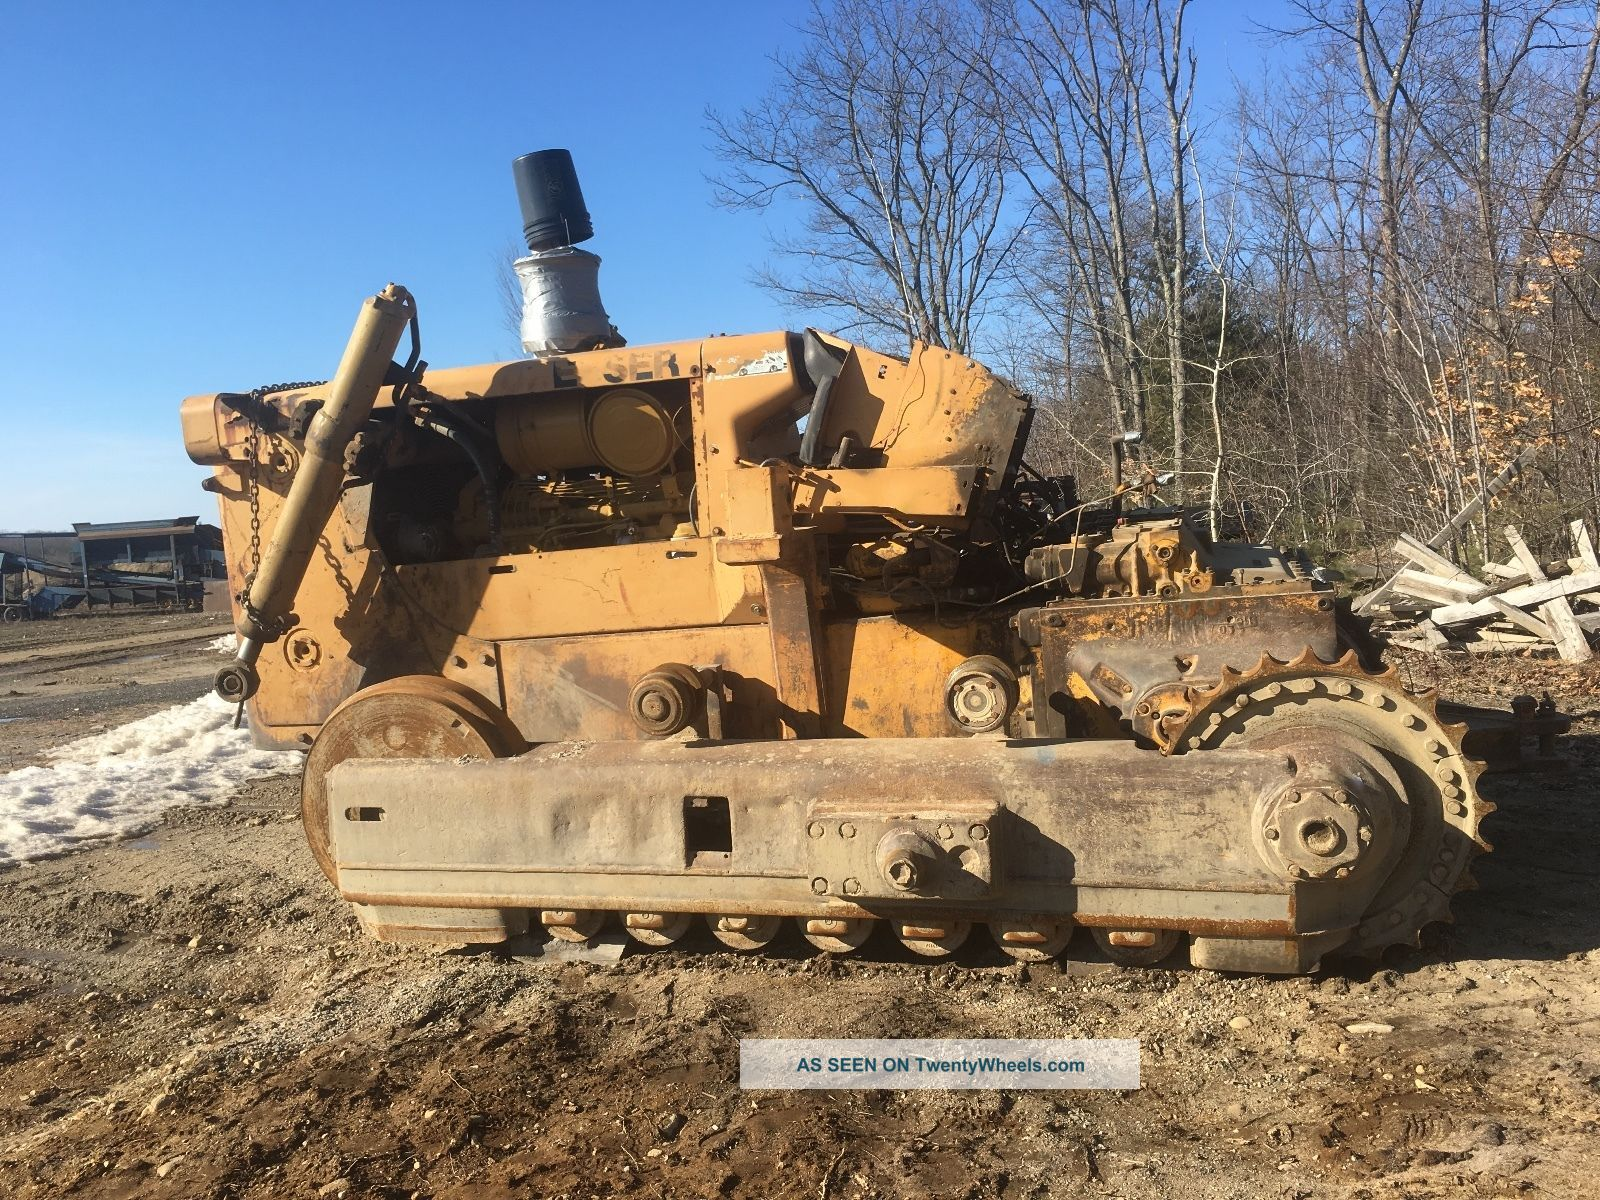 1977 International Td25c Dozer Parts Blade+track Included Crawler Dozers & Loaders photo